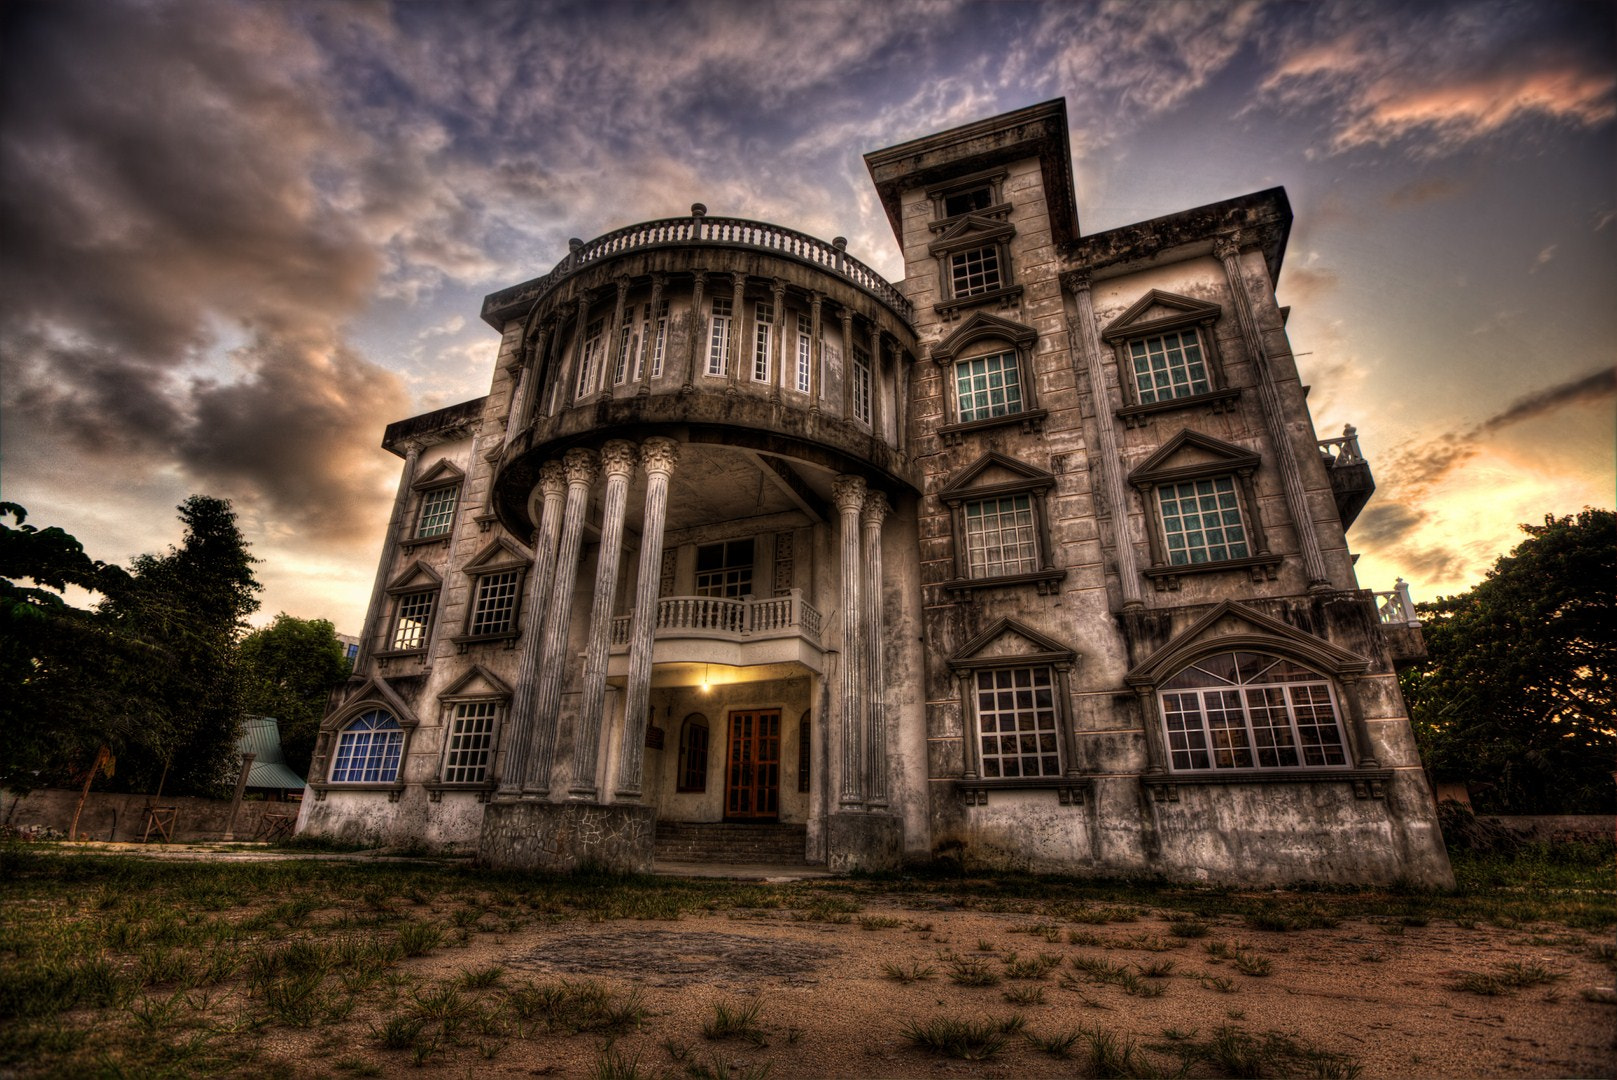 Photograph The Haunted Mansion by Cheah  Nz on 500px